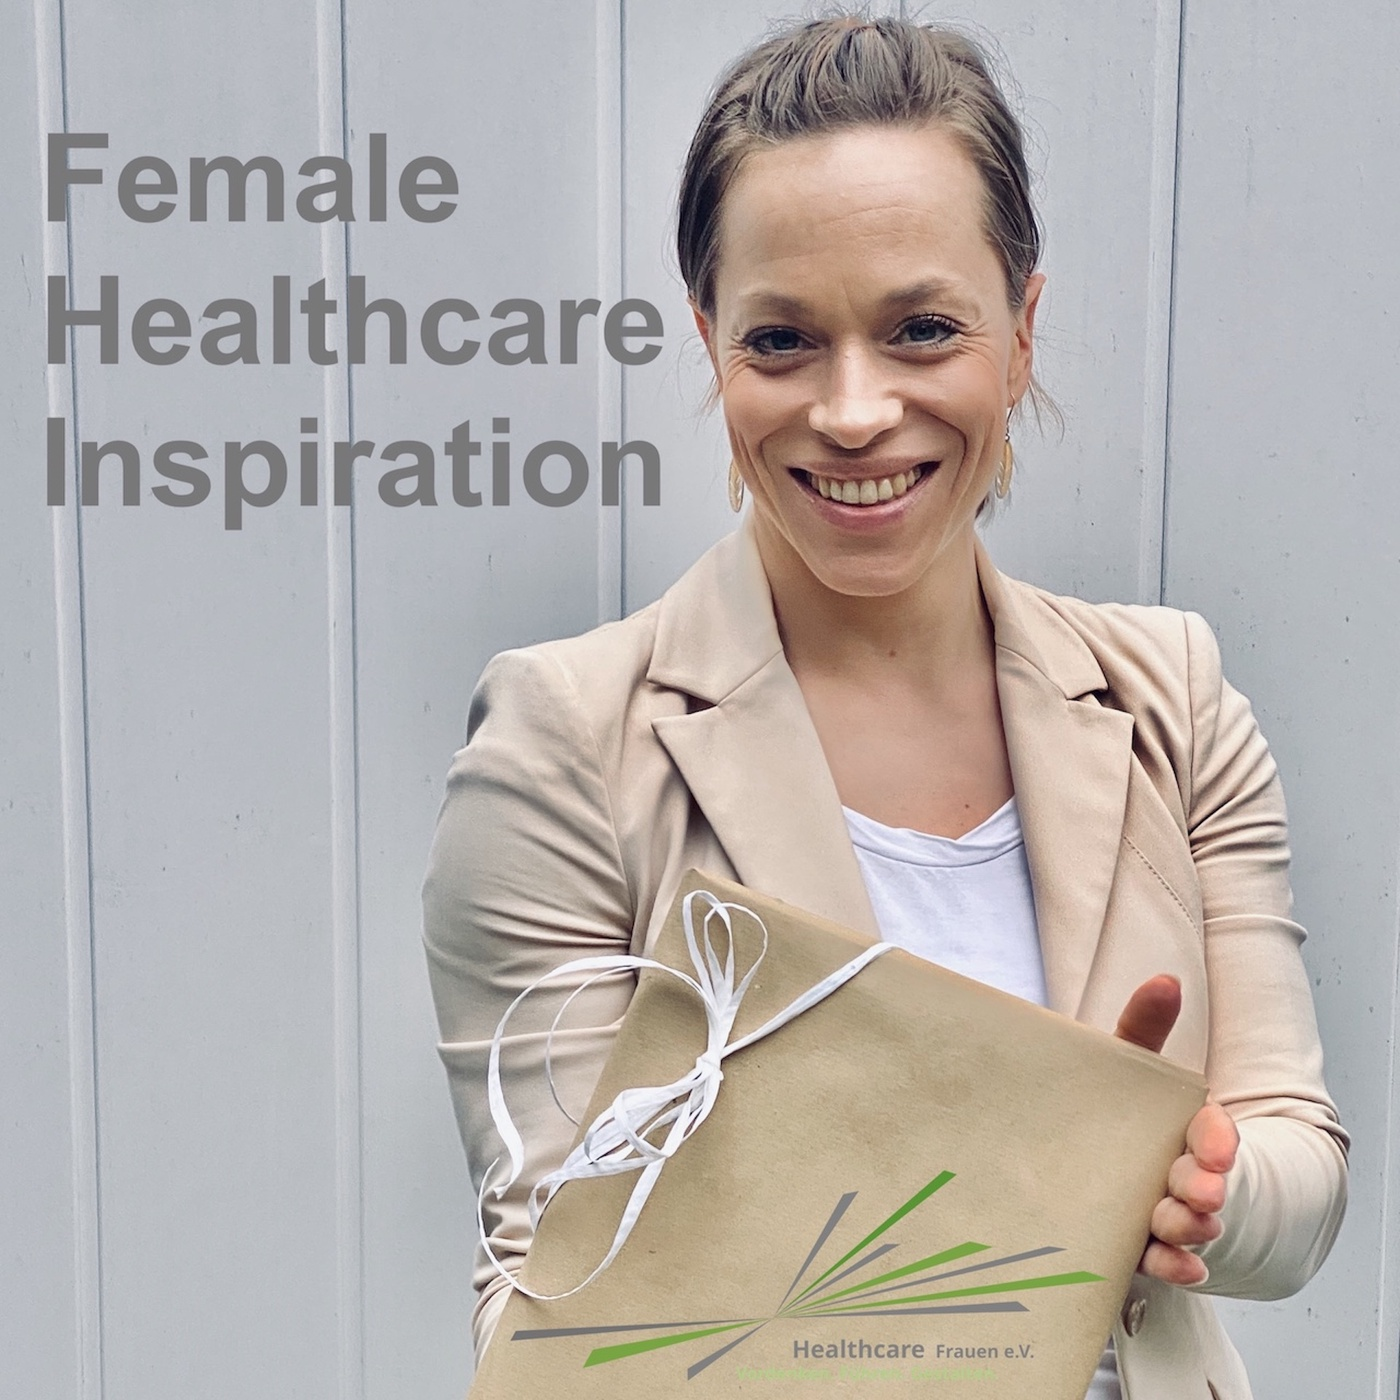 Female Healthcare Inspiration